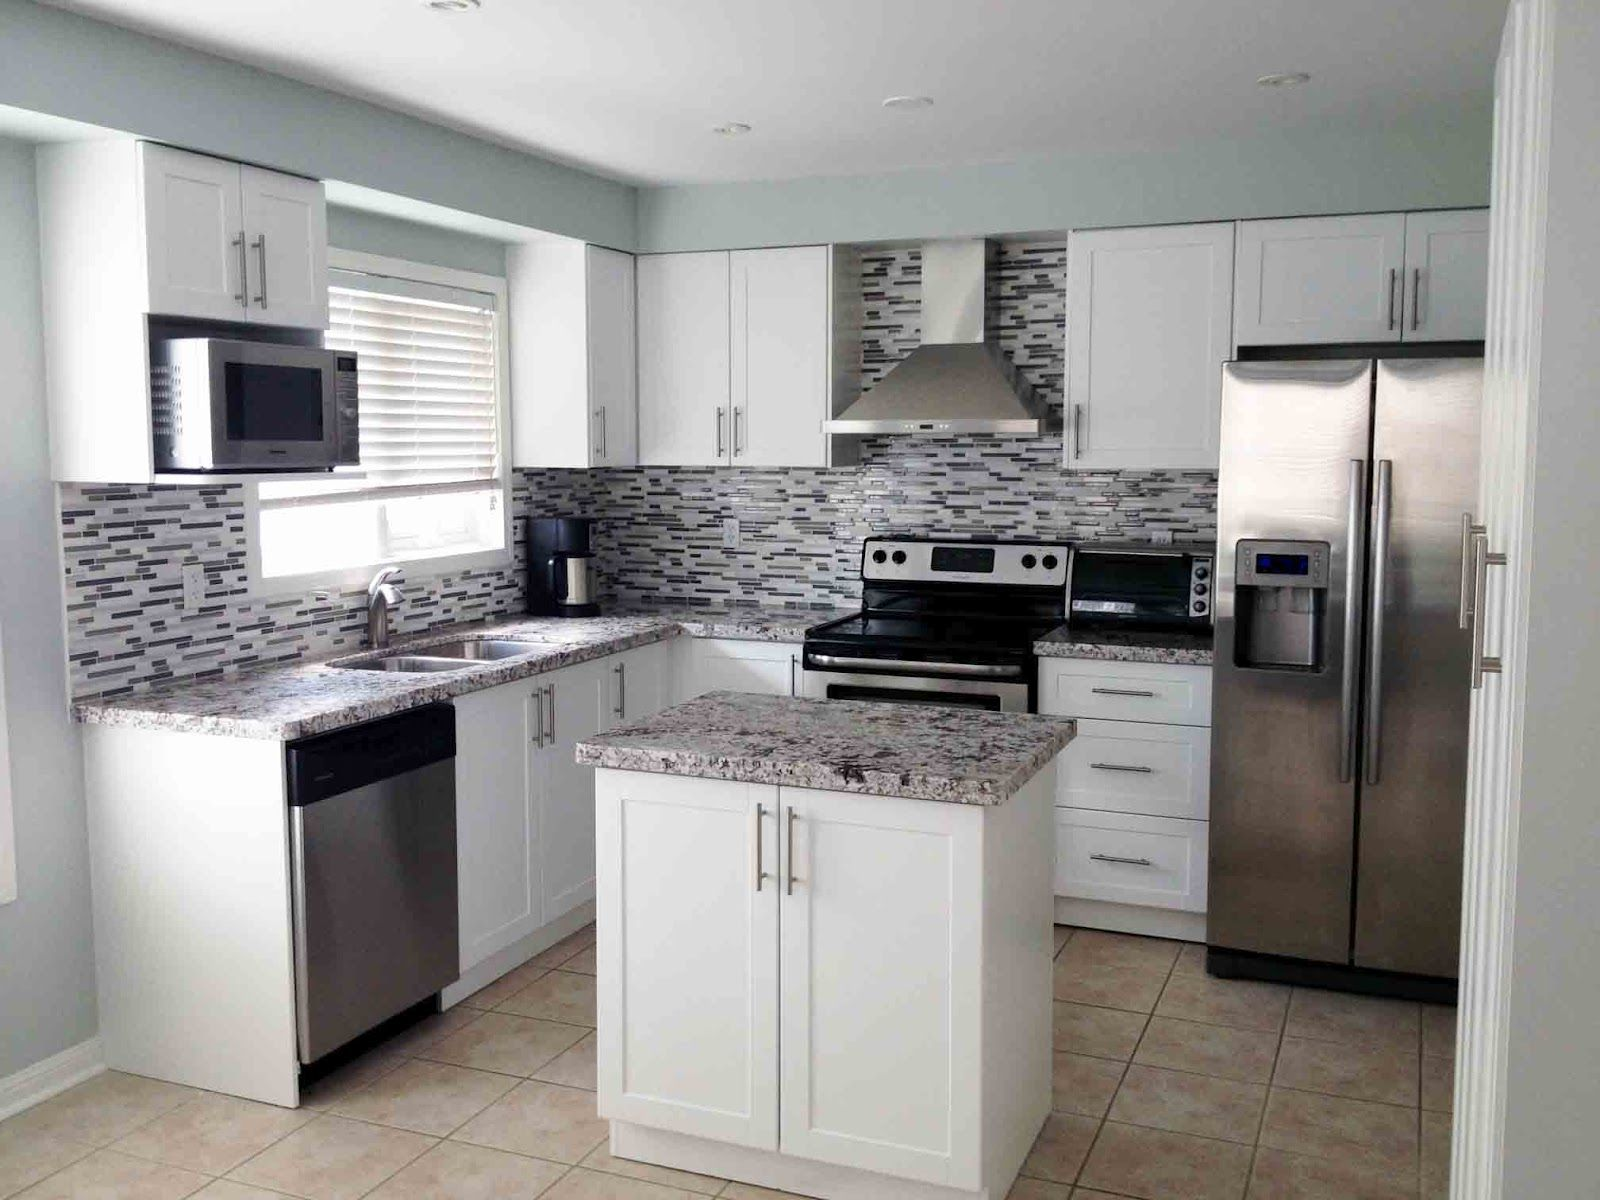 Modern White Shaker Kitchen kitchen remodel banquet | kitchen cabinets white shaker style